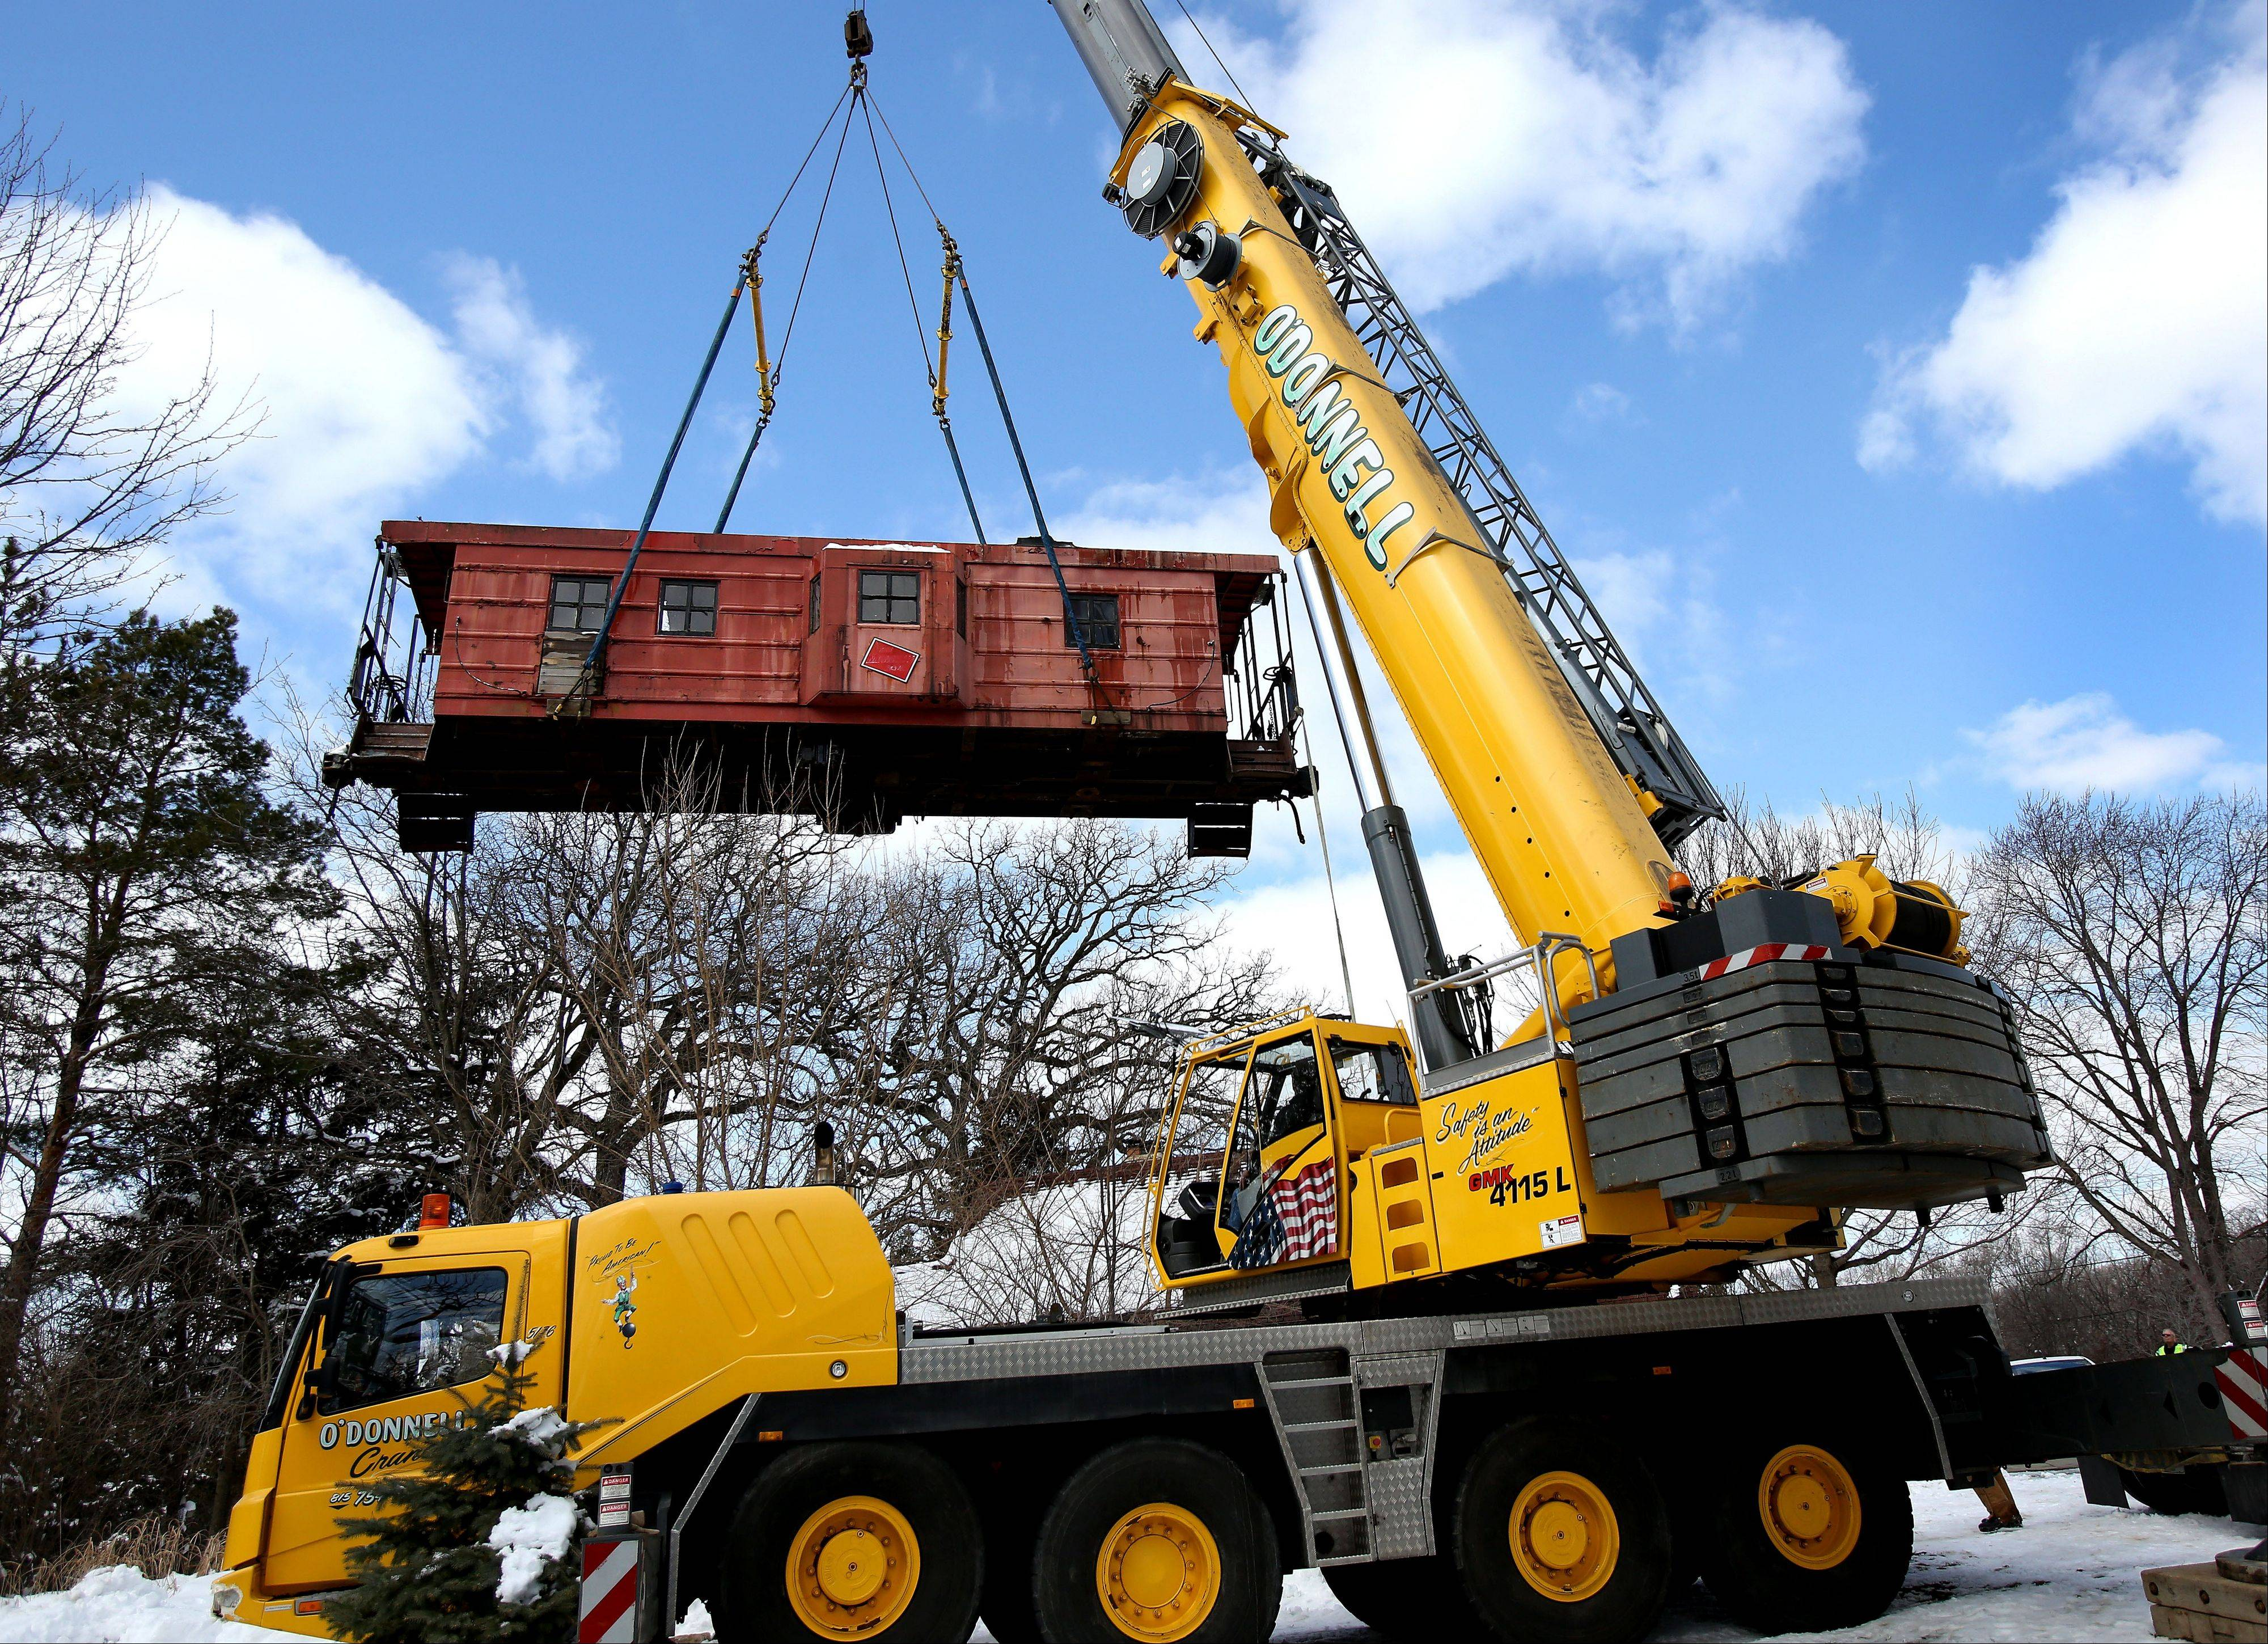 A large crane was needed to lift a caboose onto a flatbed truck Thursday in Itasca. The caboose was moved to its new home at the Itasca Historical Depot Museum.